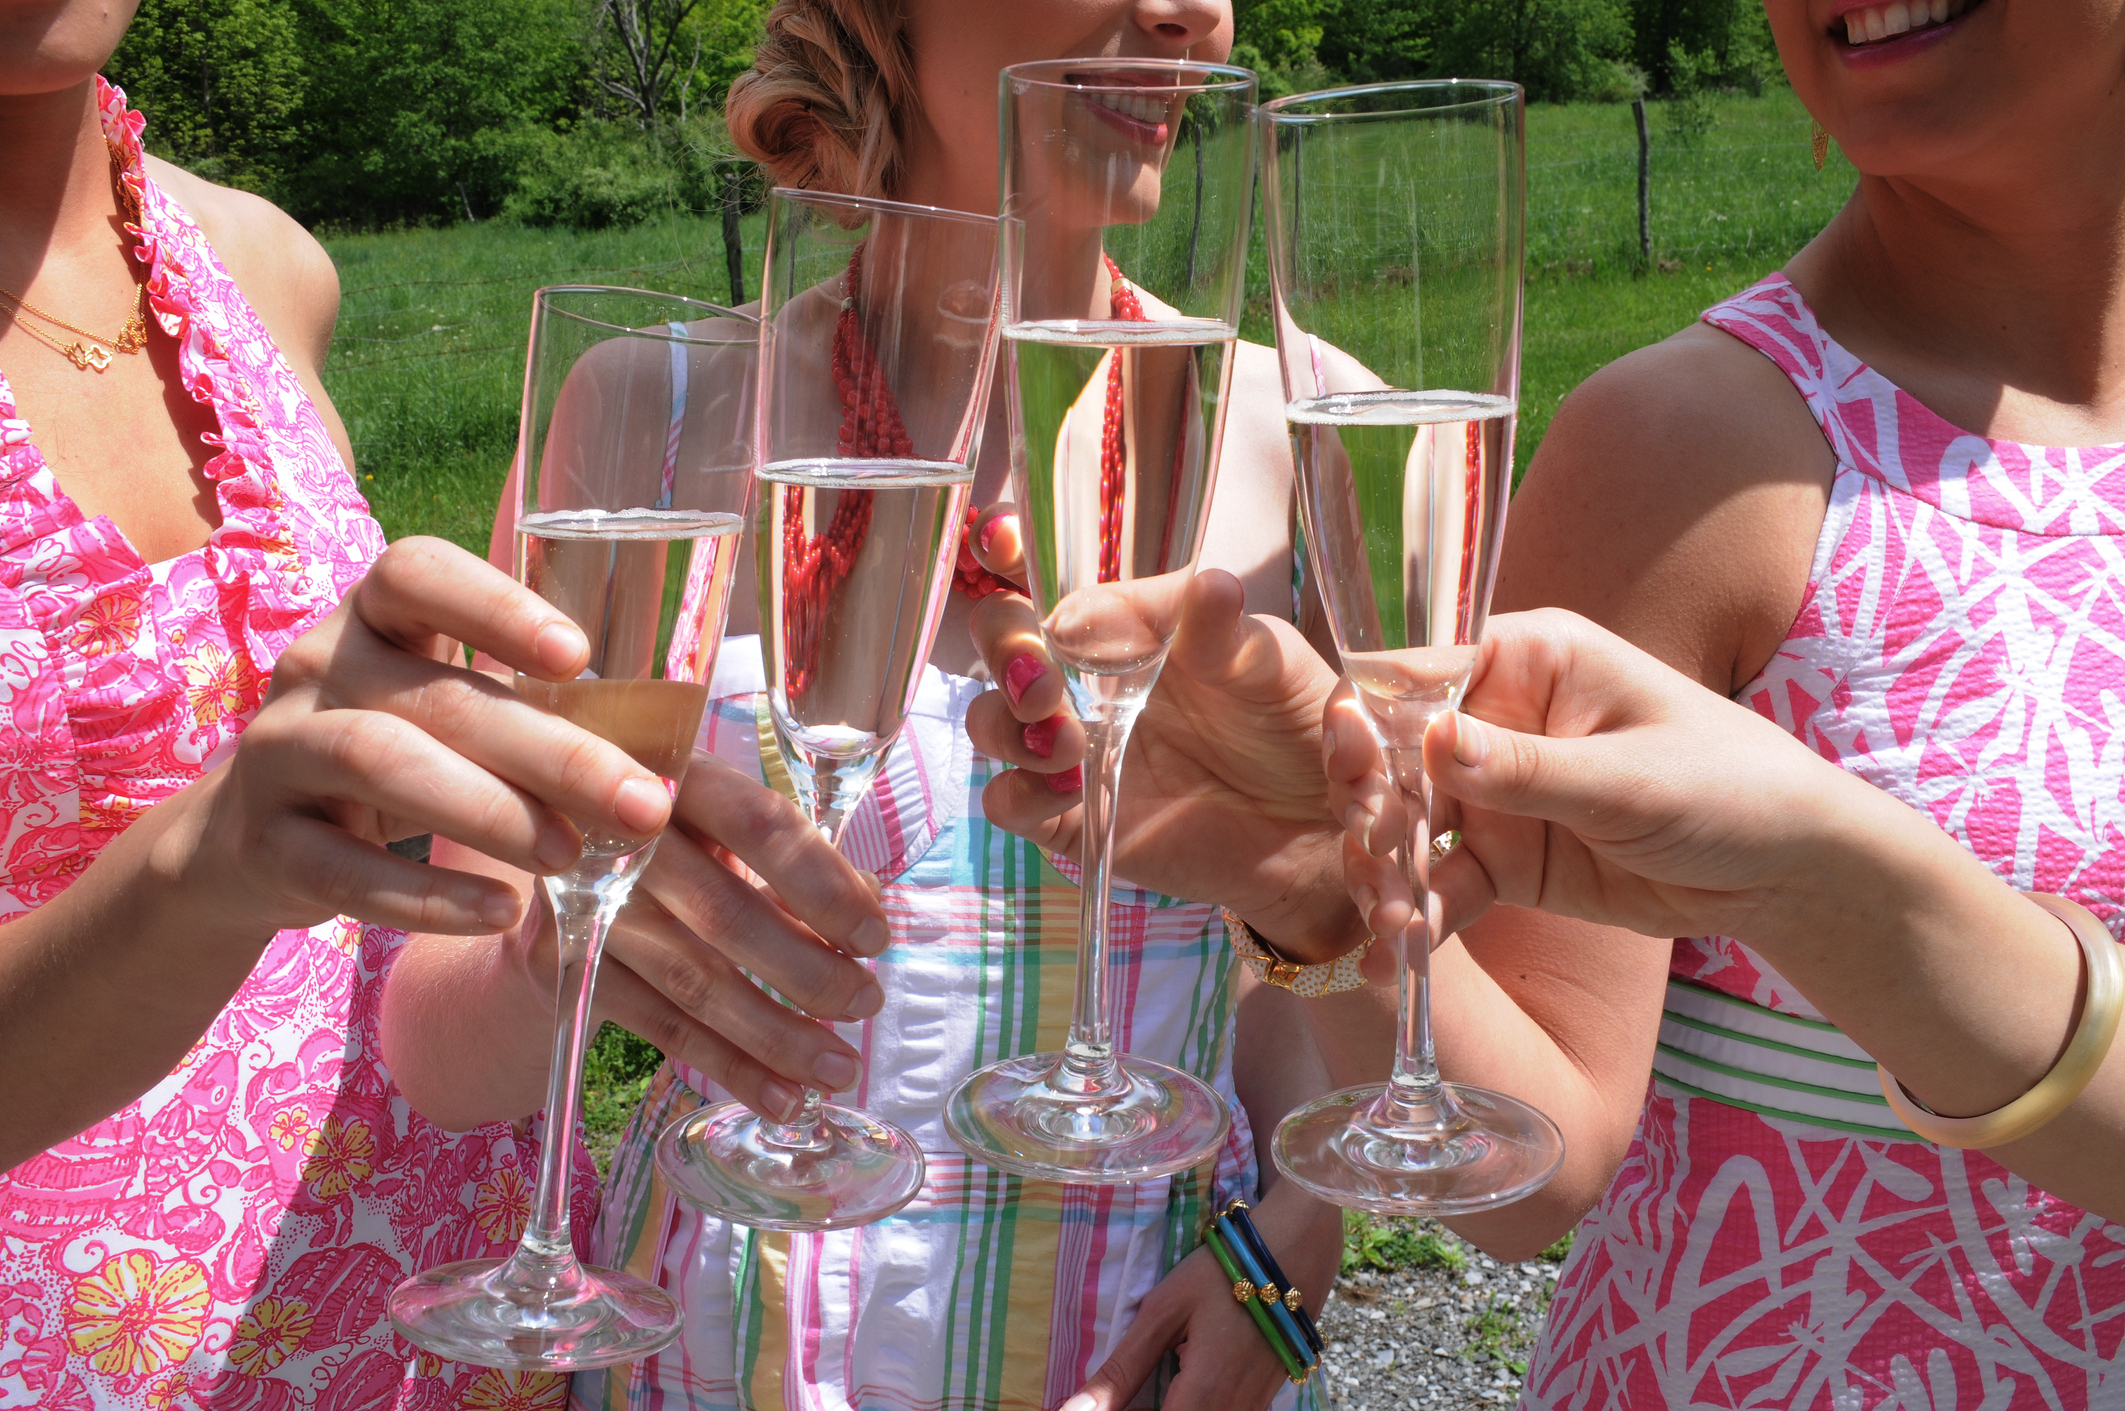 You're drinking Prosecco from the wrong glass – here's why